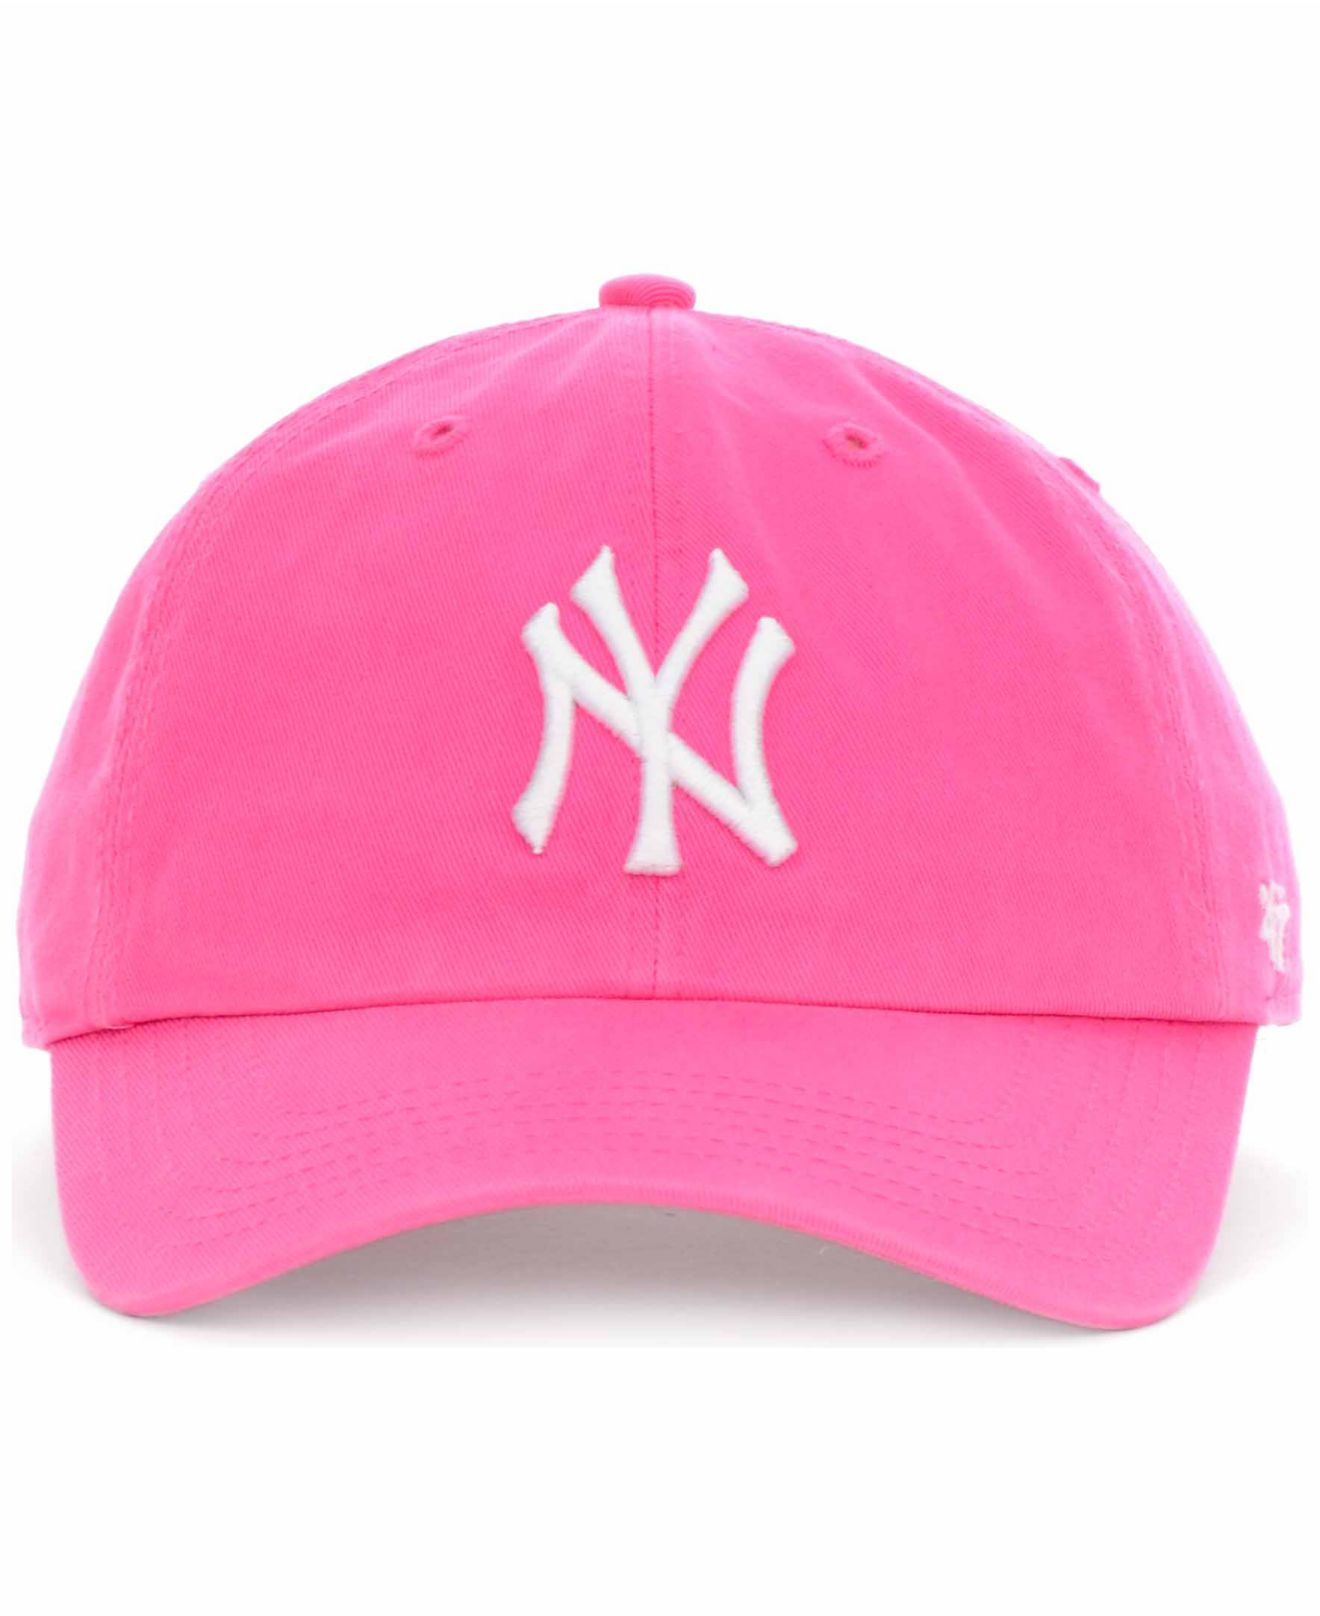 785a86fdb6e255 ... get store f5713 3256f lyst 47 brand new york yankees clean up hat in  pink 4fc4a